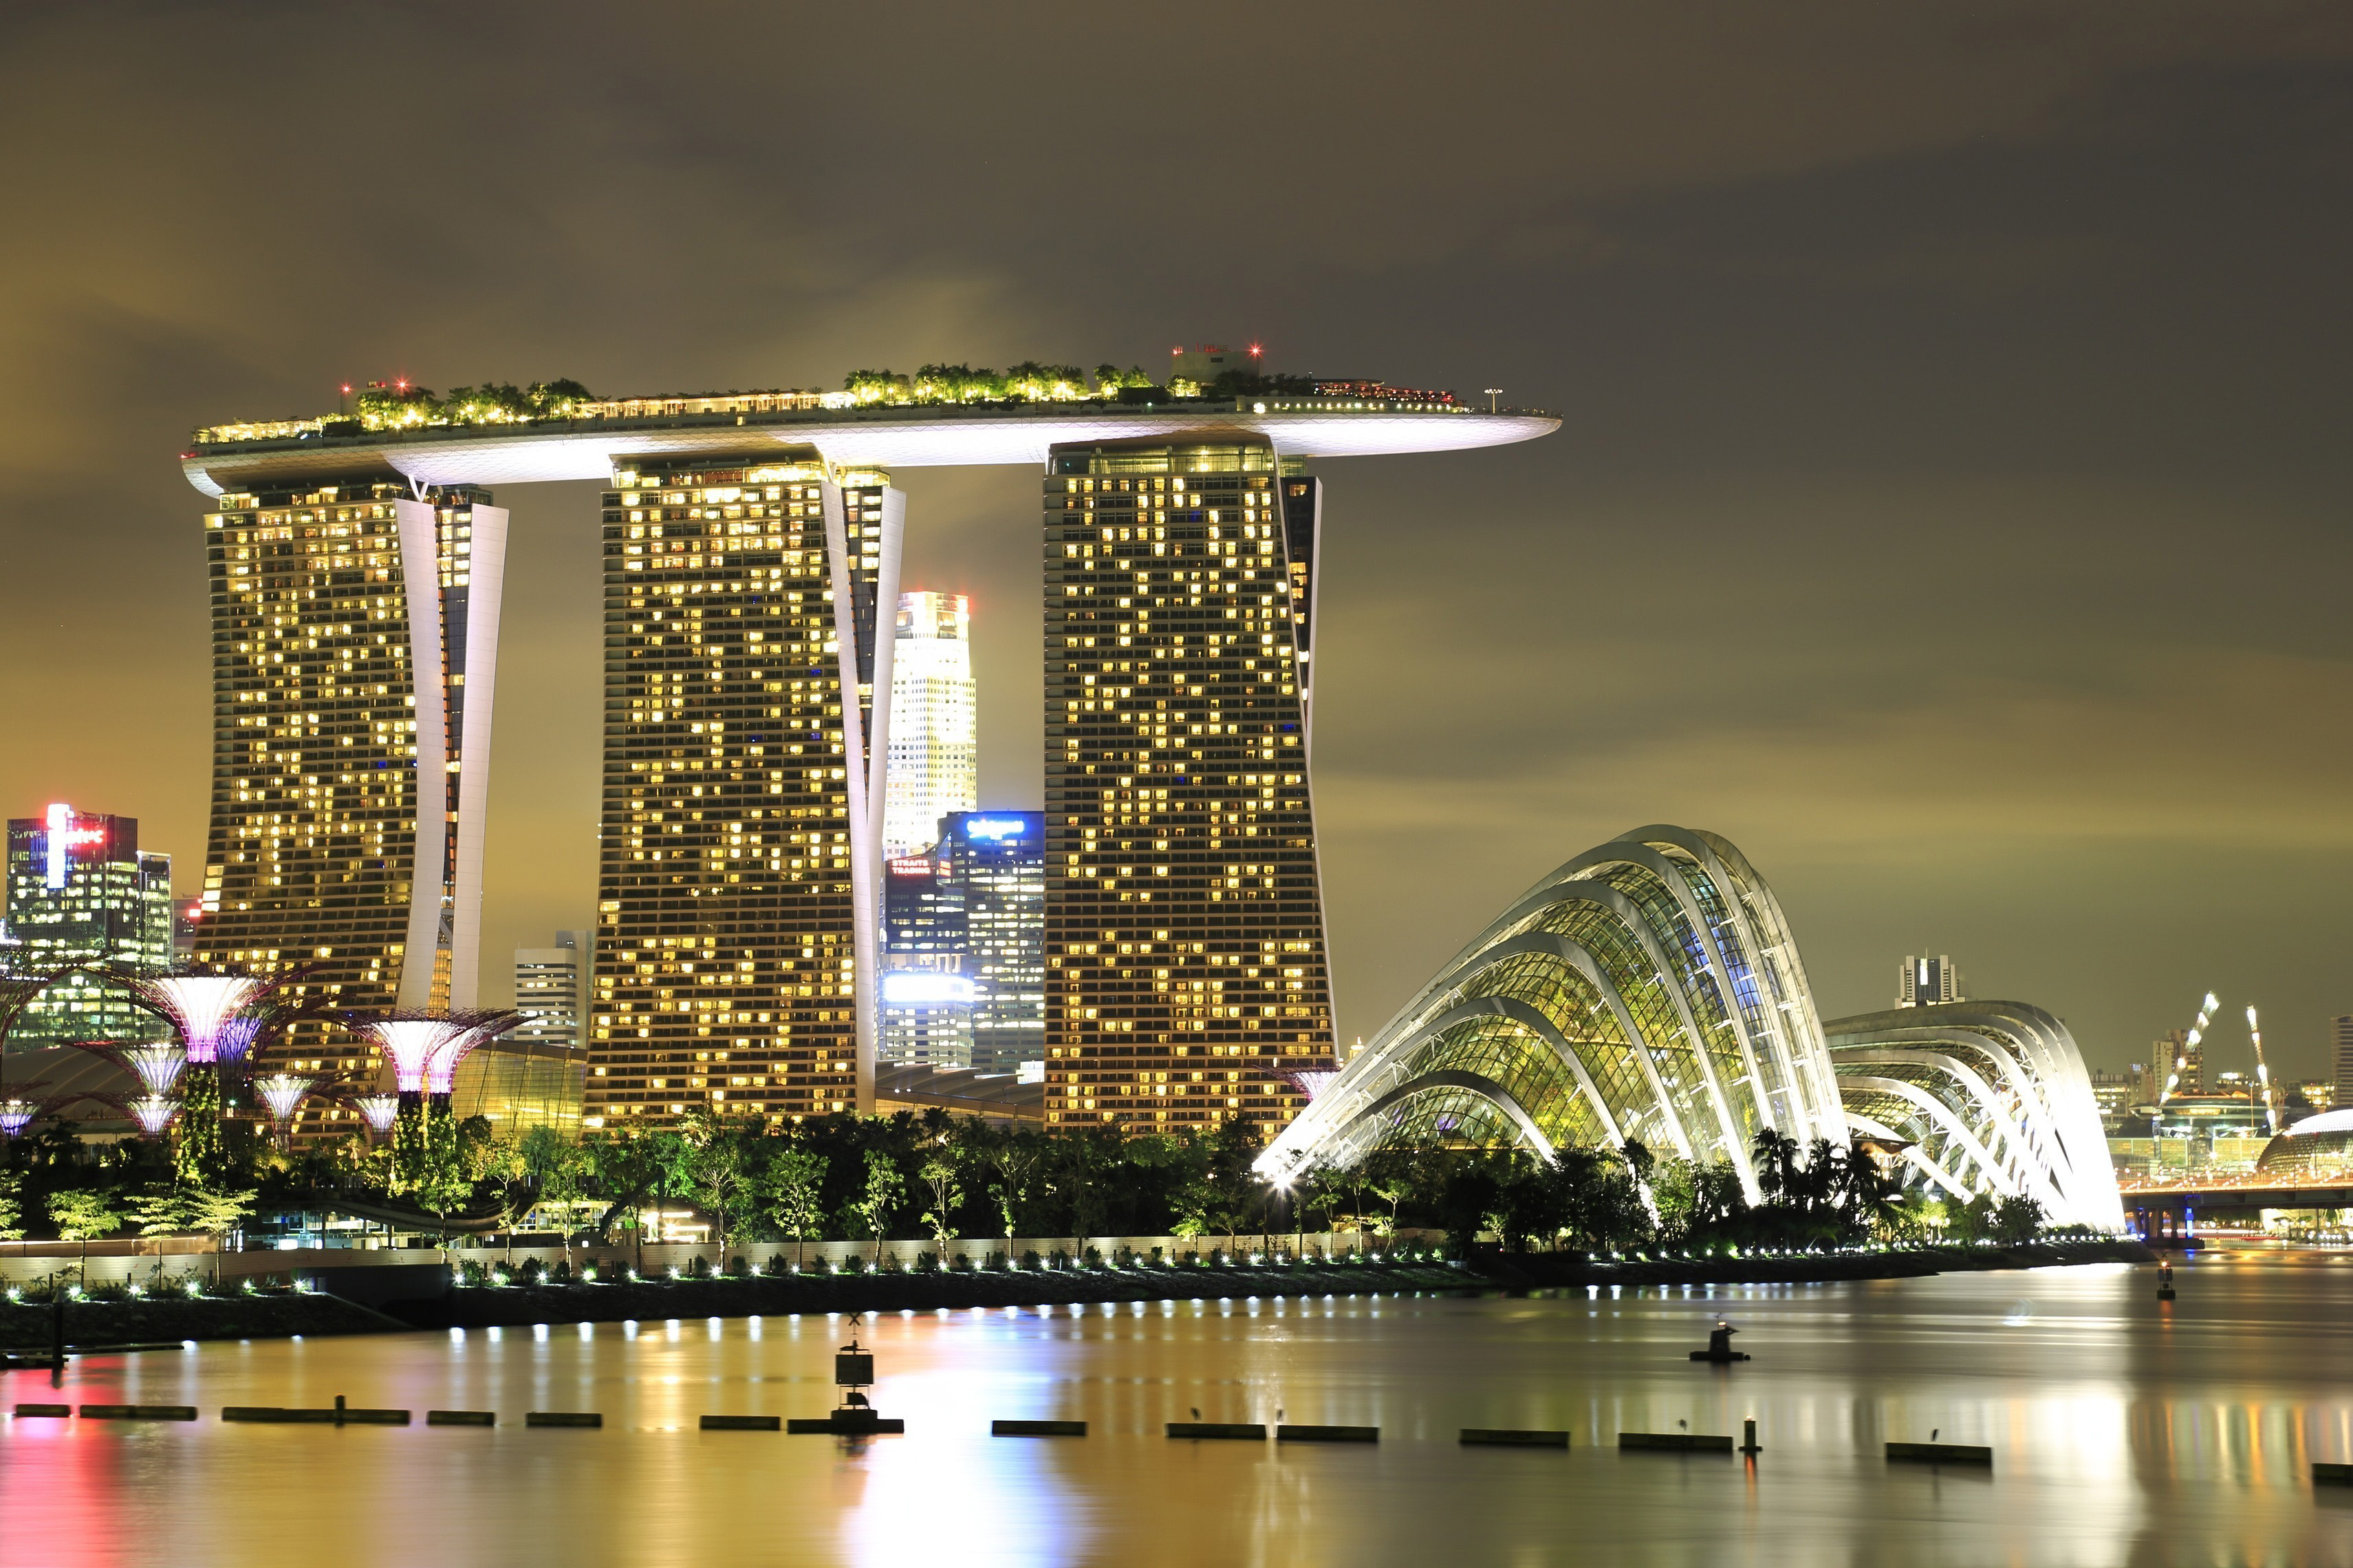 singapore casino Opened in 2010 singapore marina bay sands is part of the mega $55 billion resort project, marina bay sands hotel but it's much more than just a hotel and casino.